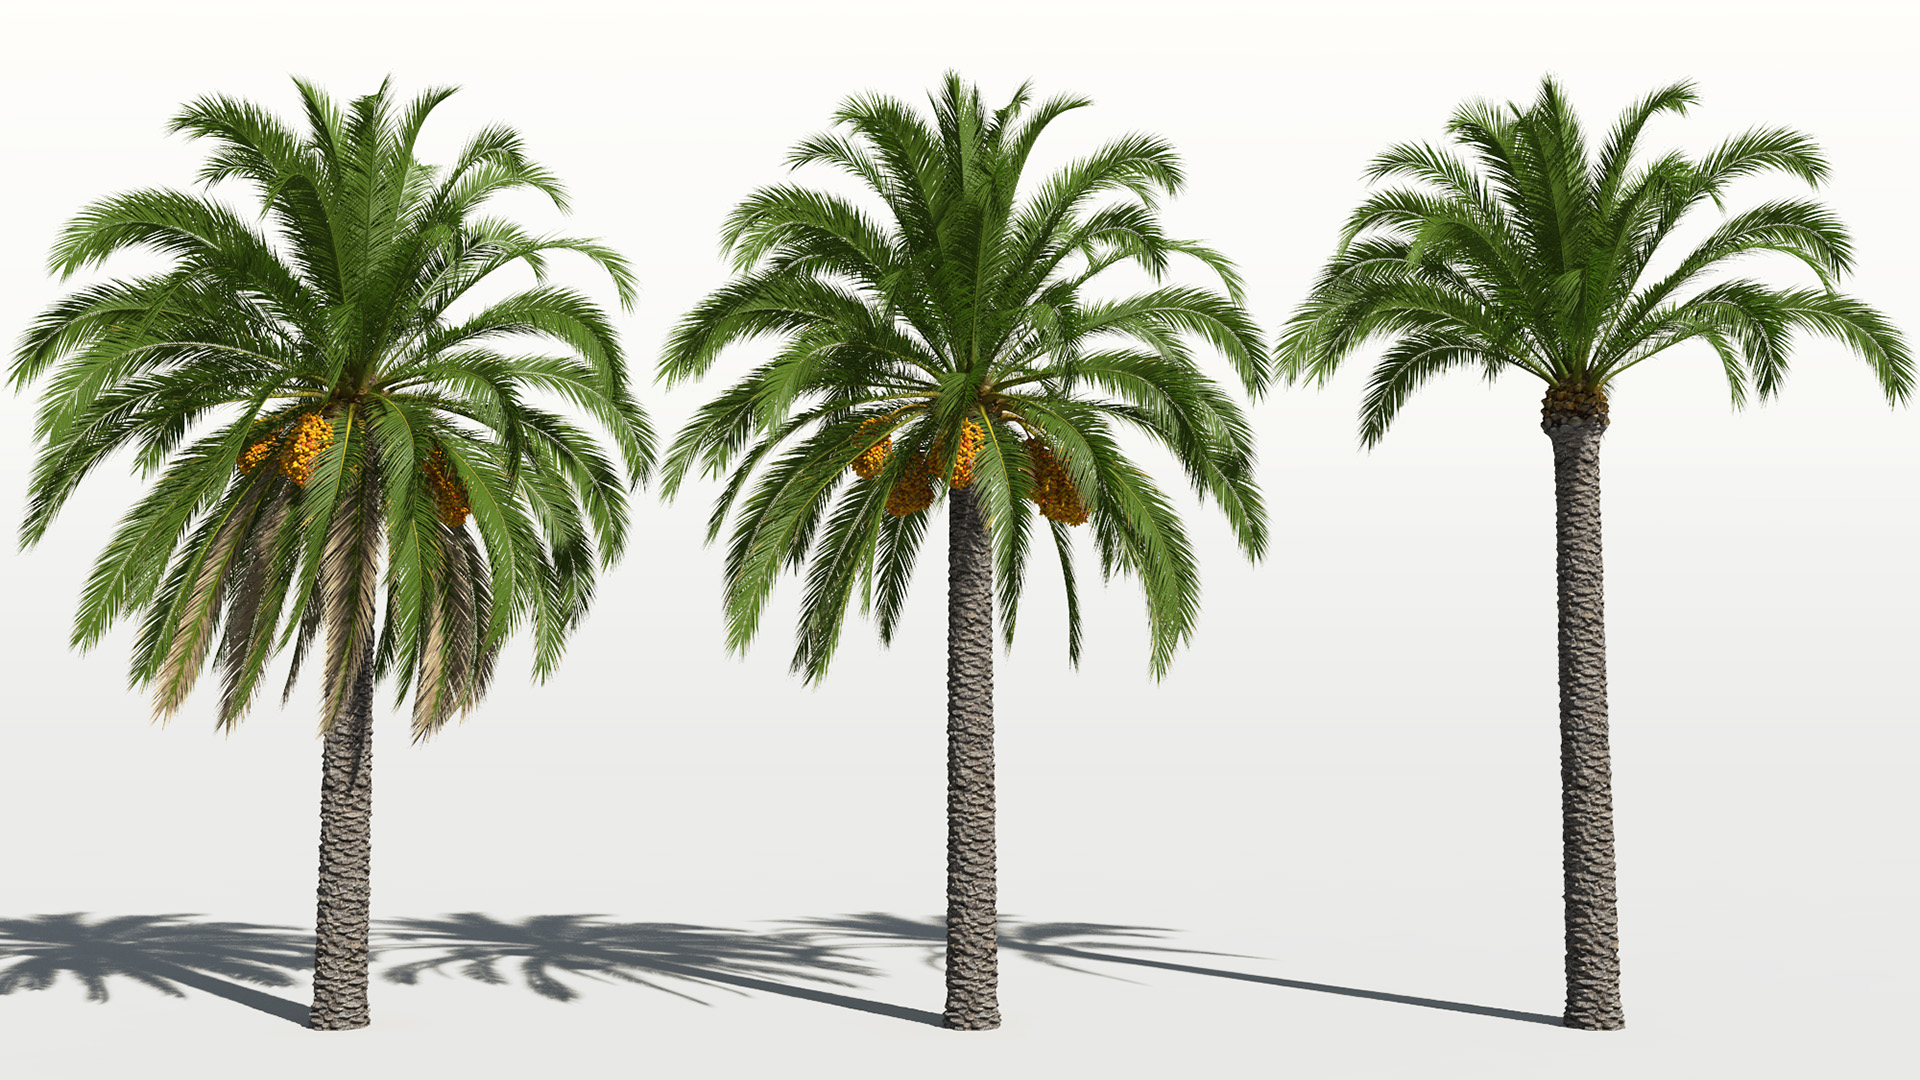 3D model of the Canary Island date palm Phoenix canariensis